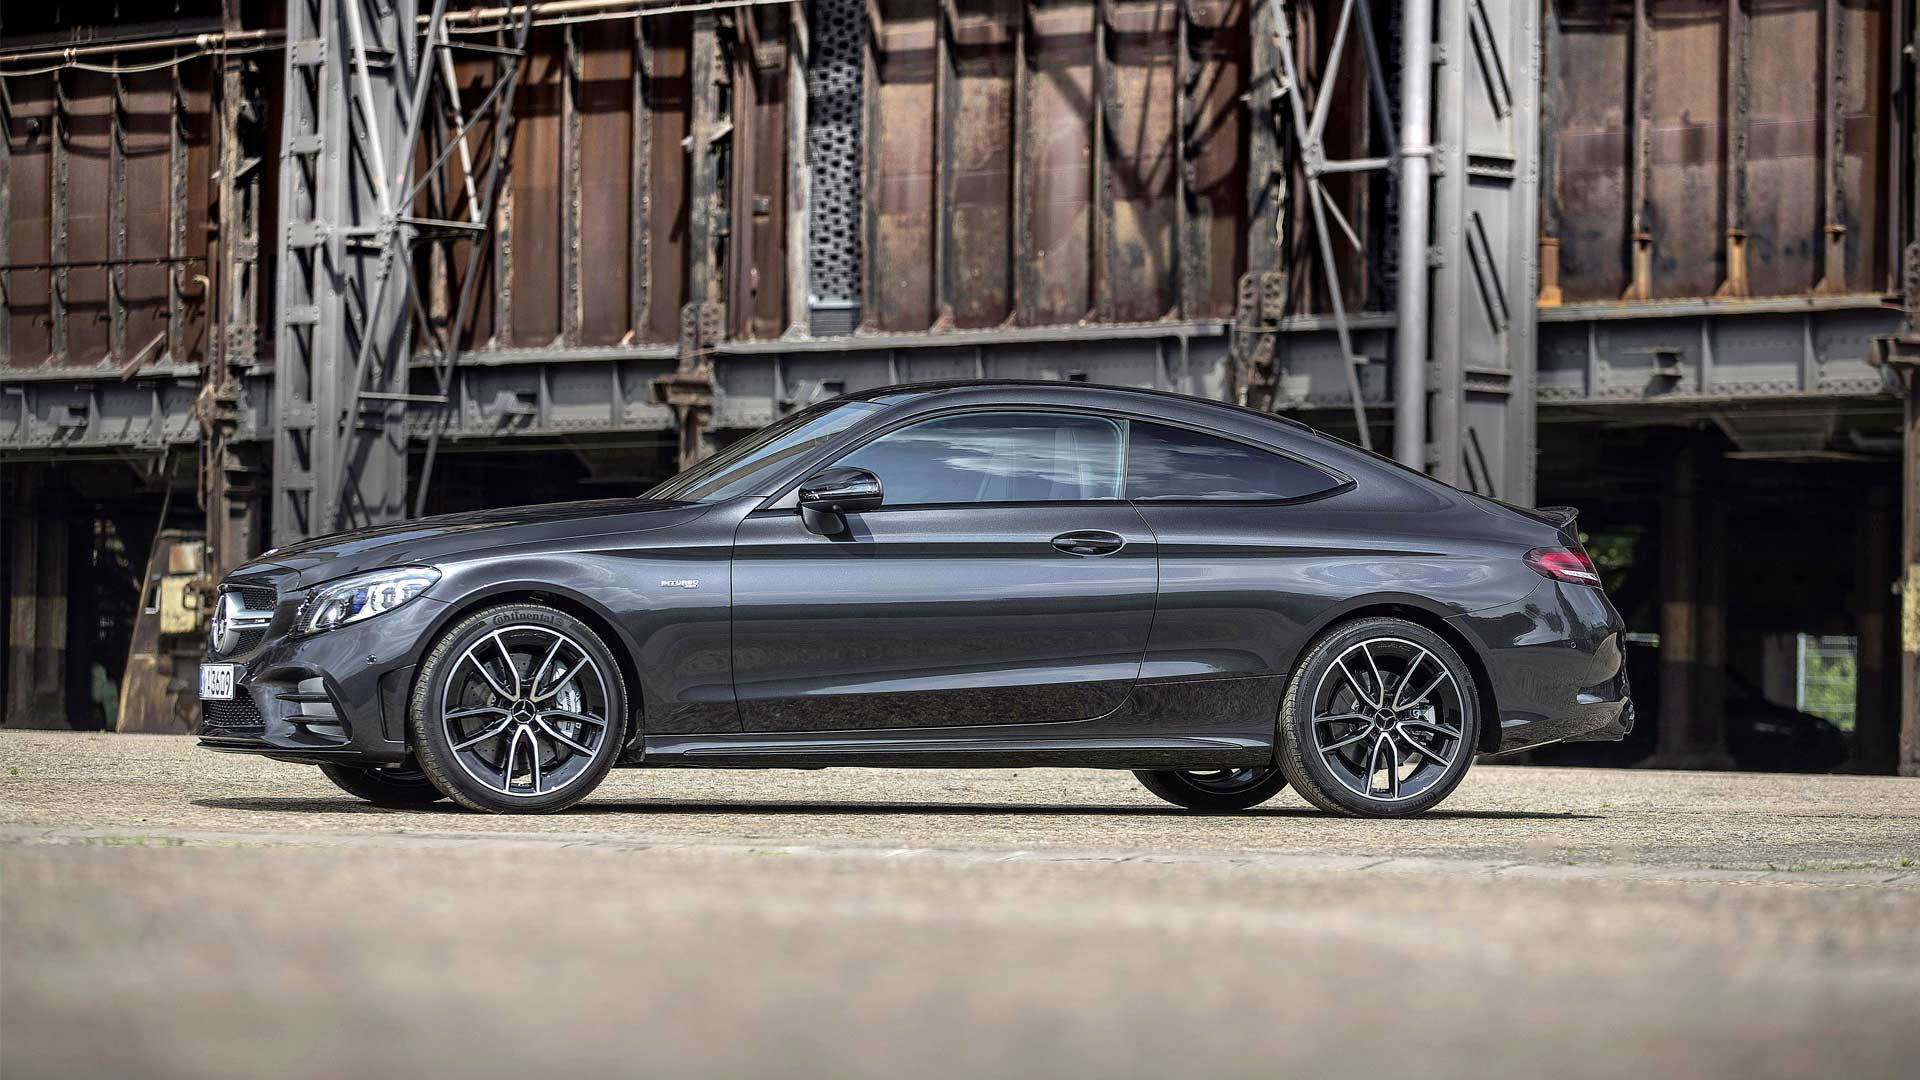 New Mercedes-AMG-C-43-4MATIC-Coupé_2